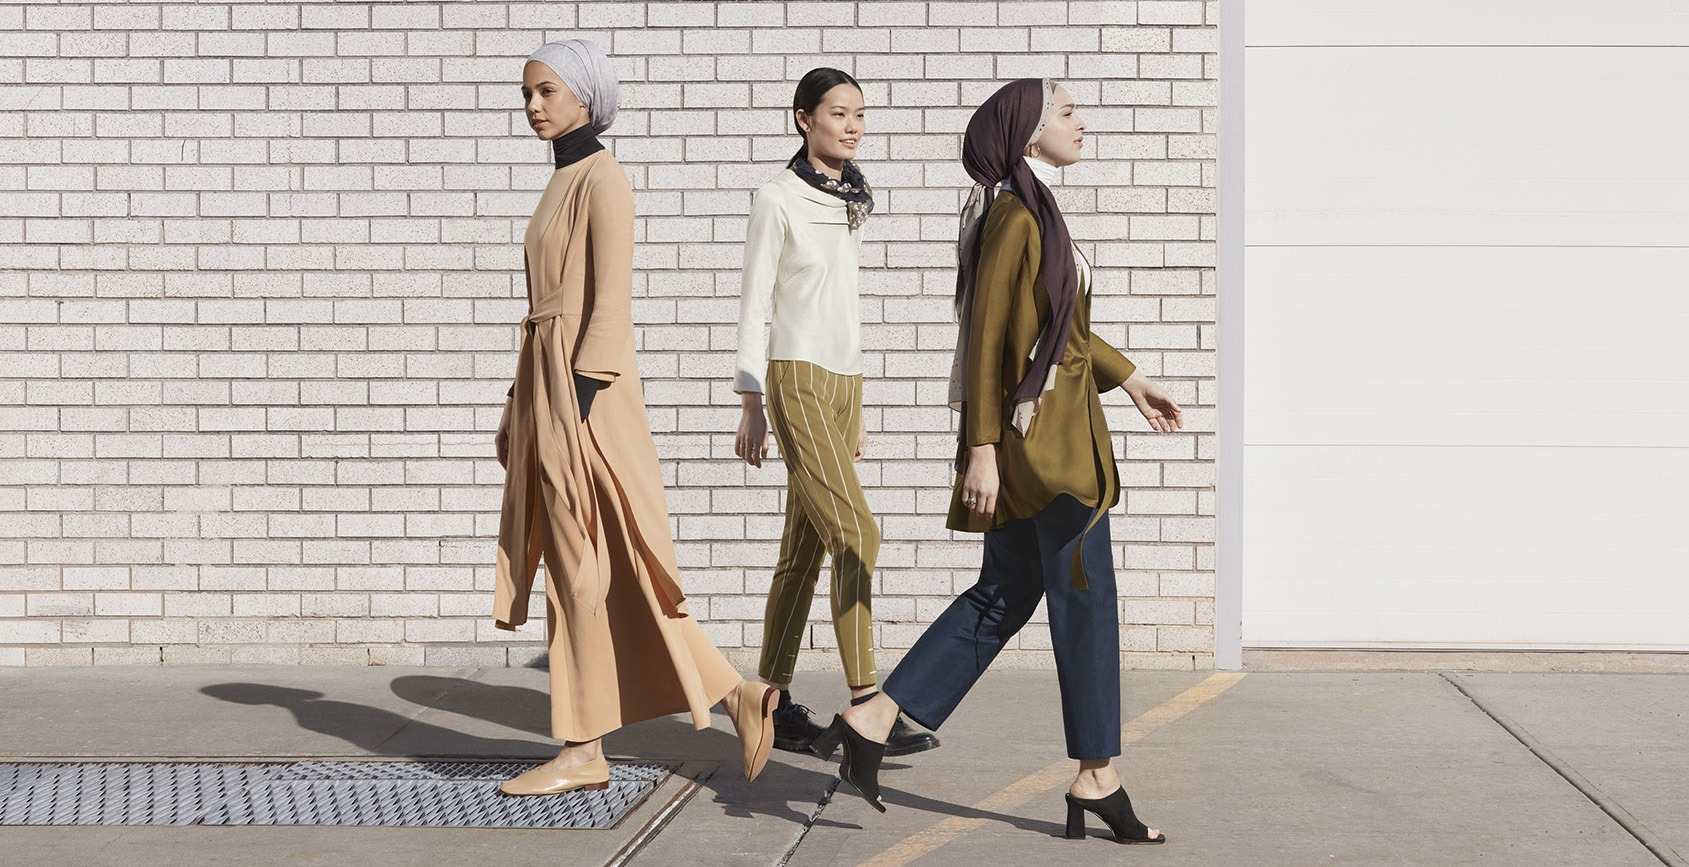 Uniqlo launching new women's line that includes hijabs and tunics (PHOTOS)